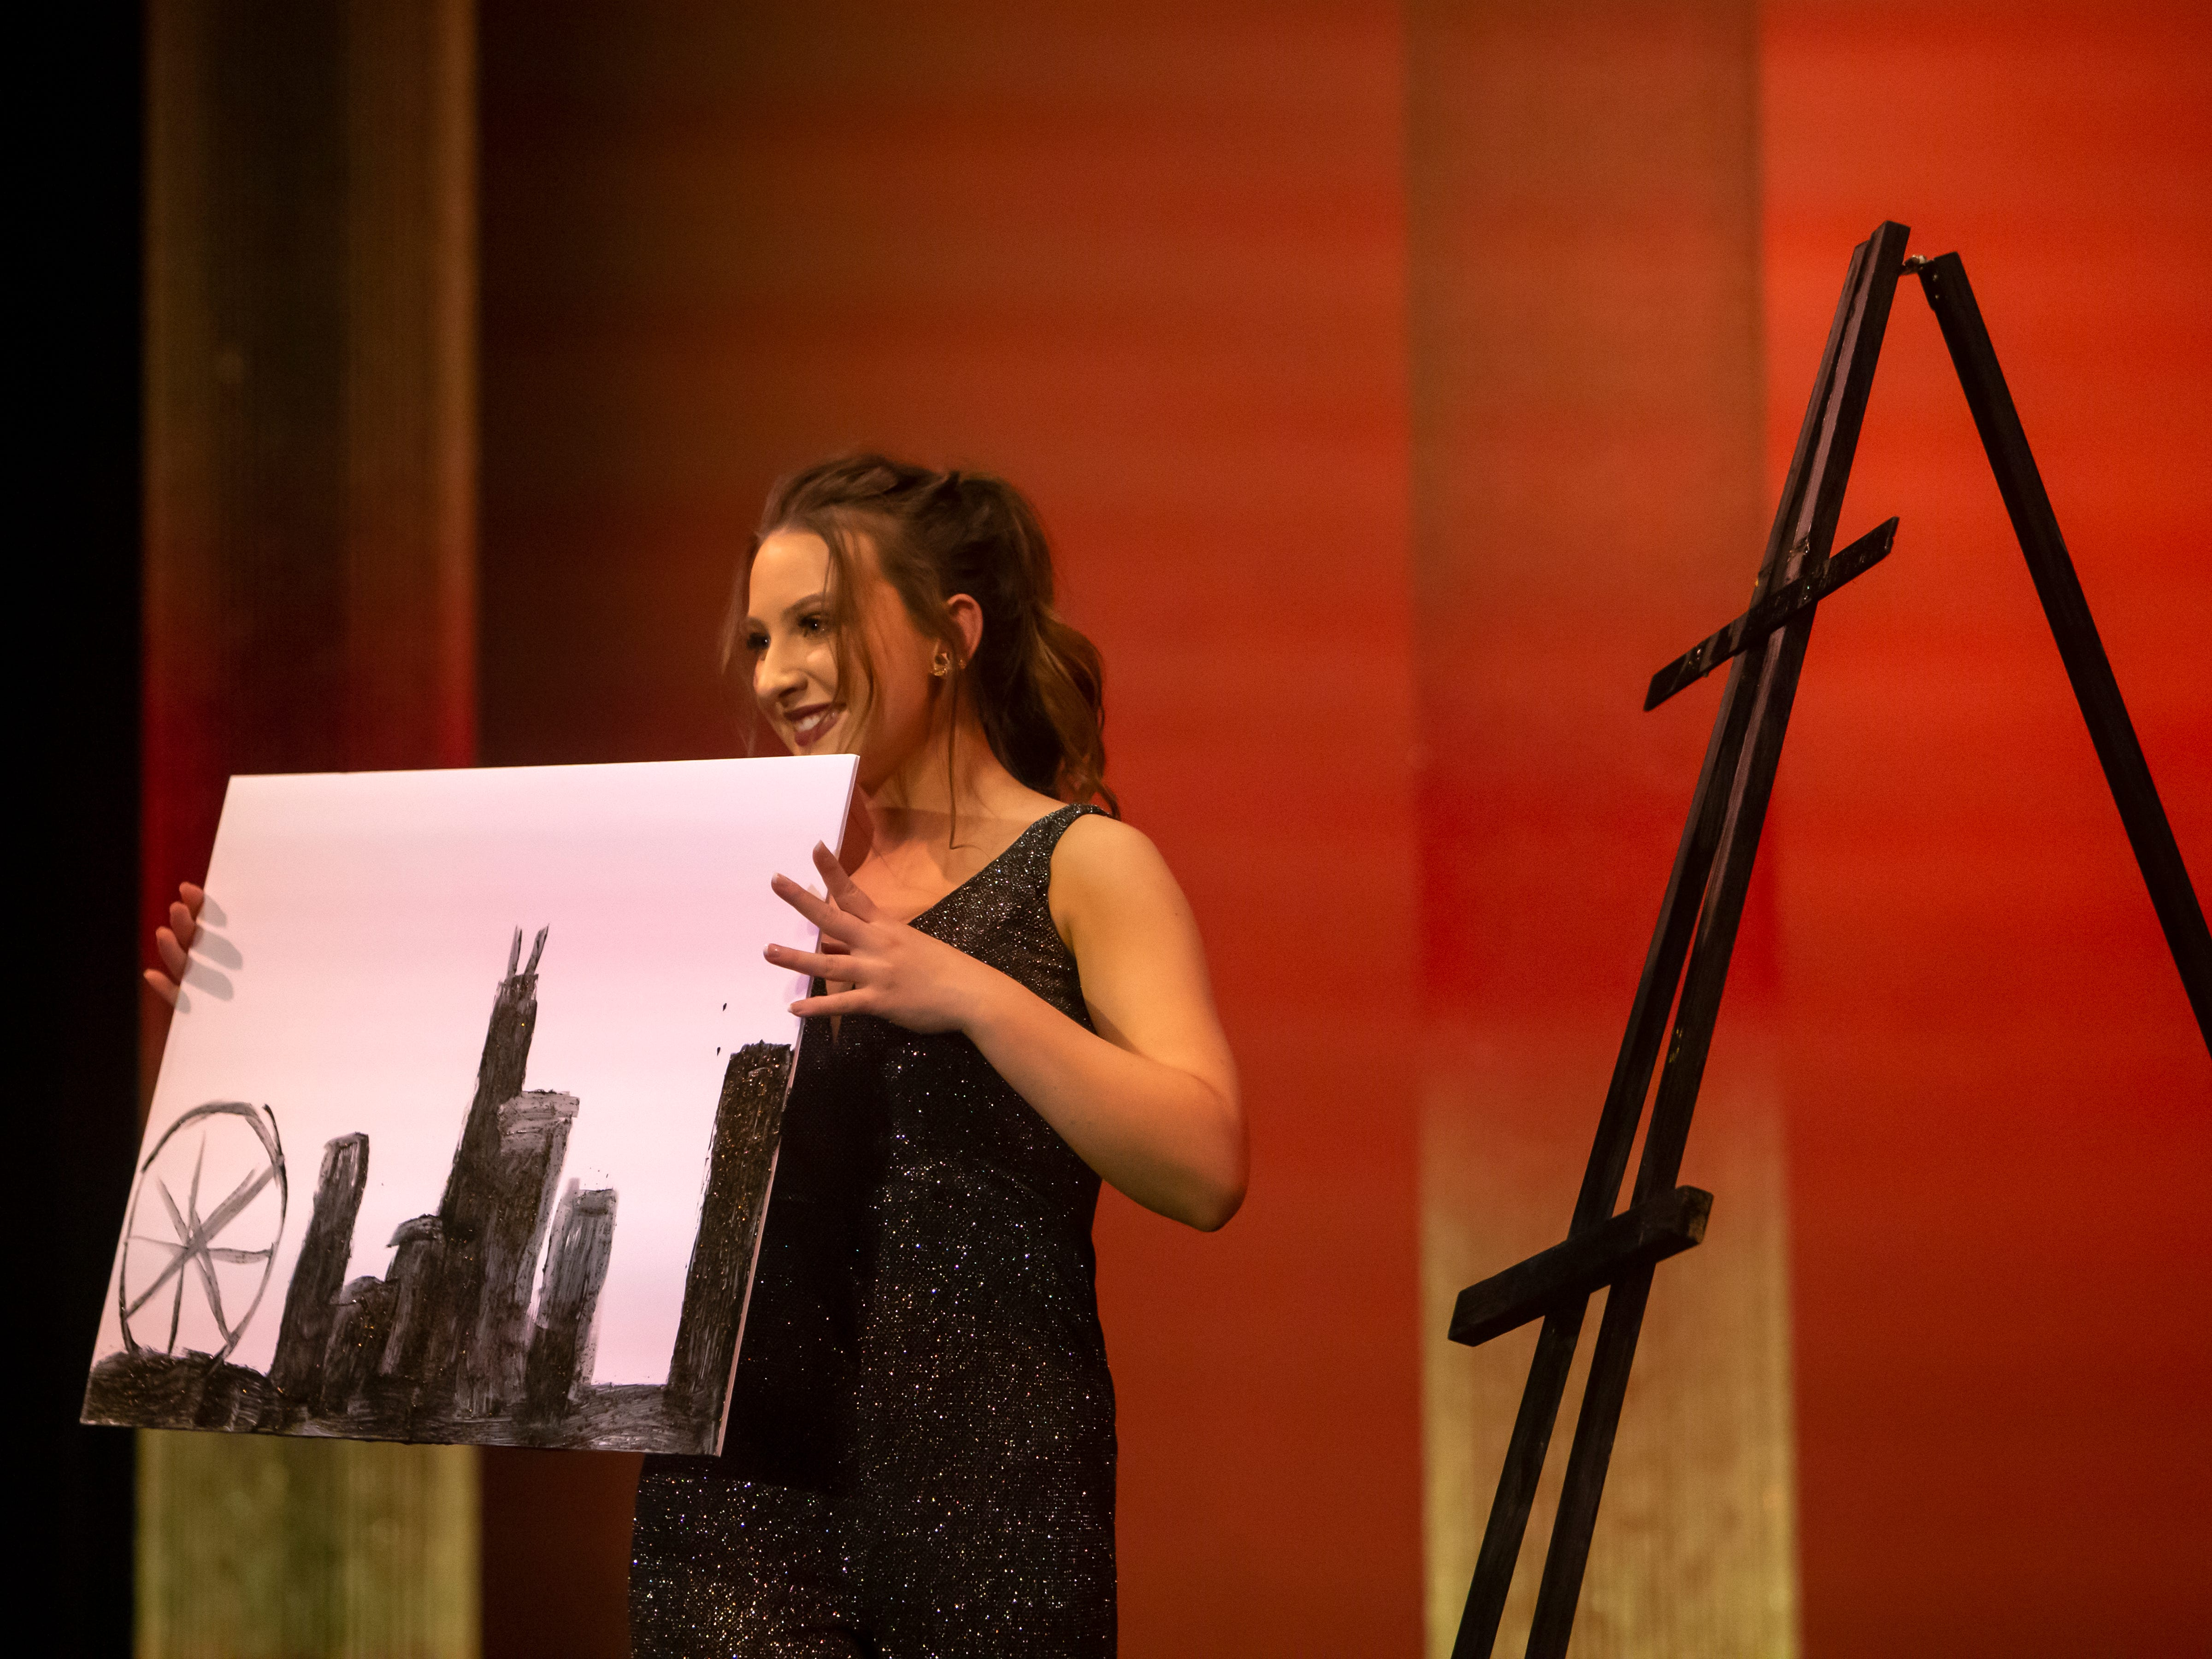 Meghan Selenka draws a piece of art during the Miss Oshkosh's Outstanding Teen portion of the scholarship pageant Saturday, March 2, 2019, at Alberta Kimball Auditorium in Oshkosh, Wis.